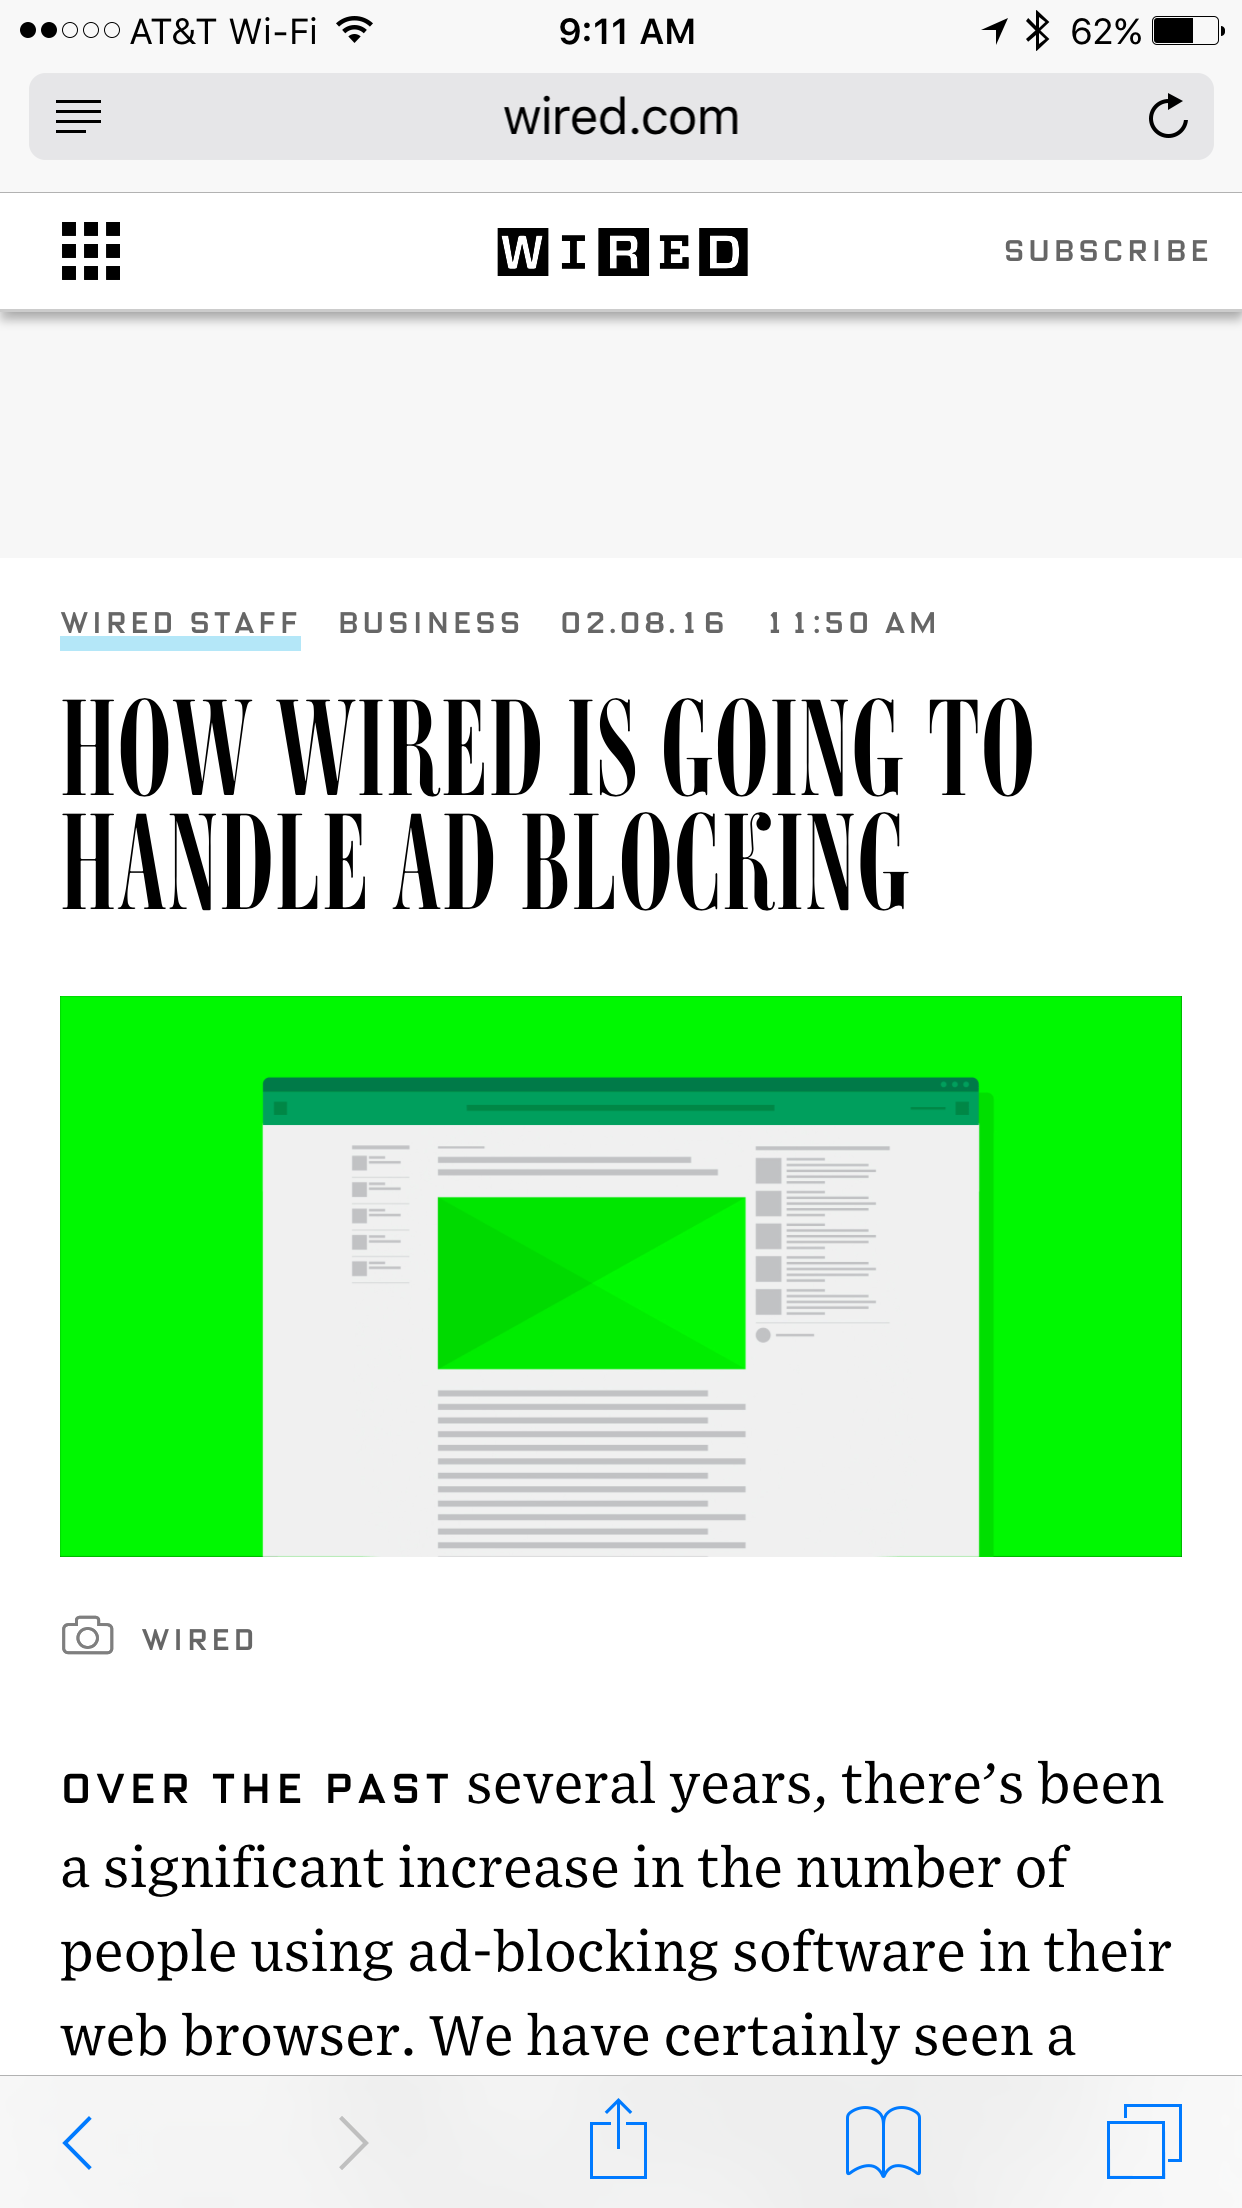 Ads being blocked - for now